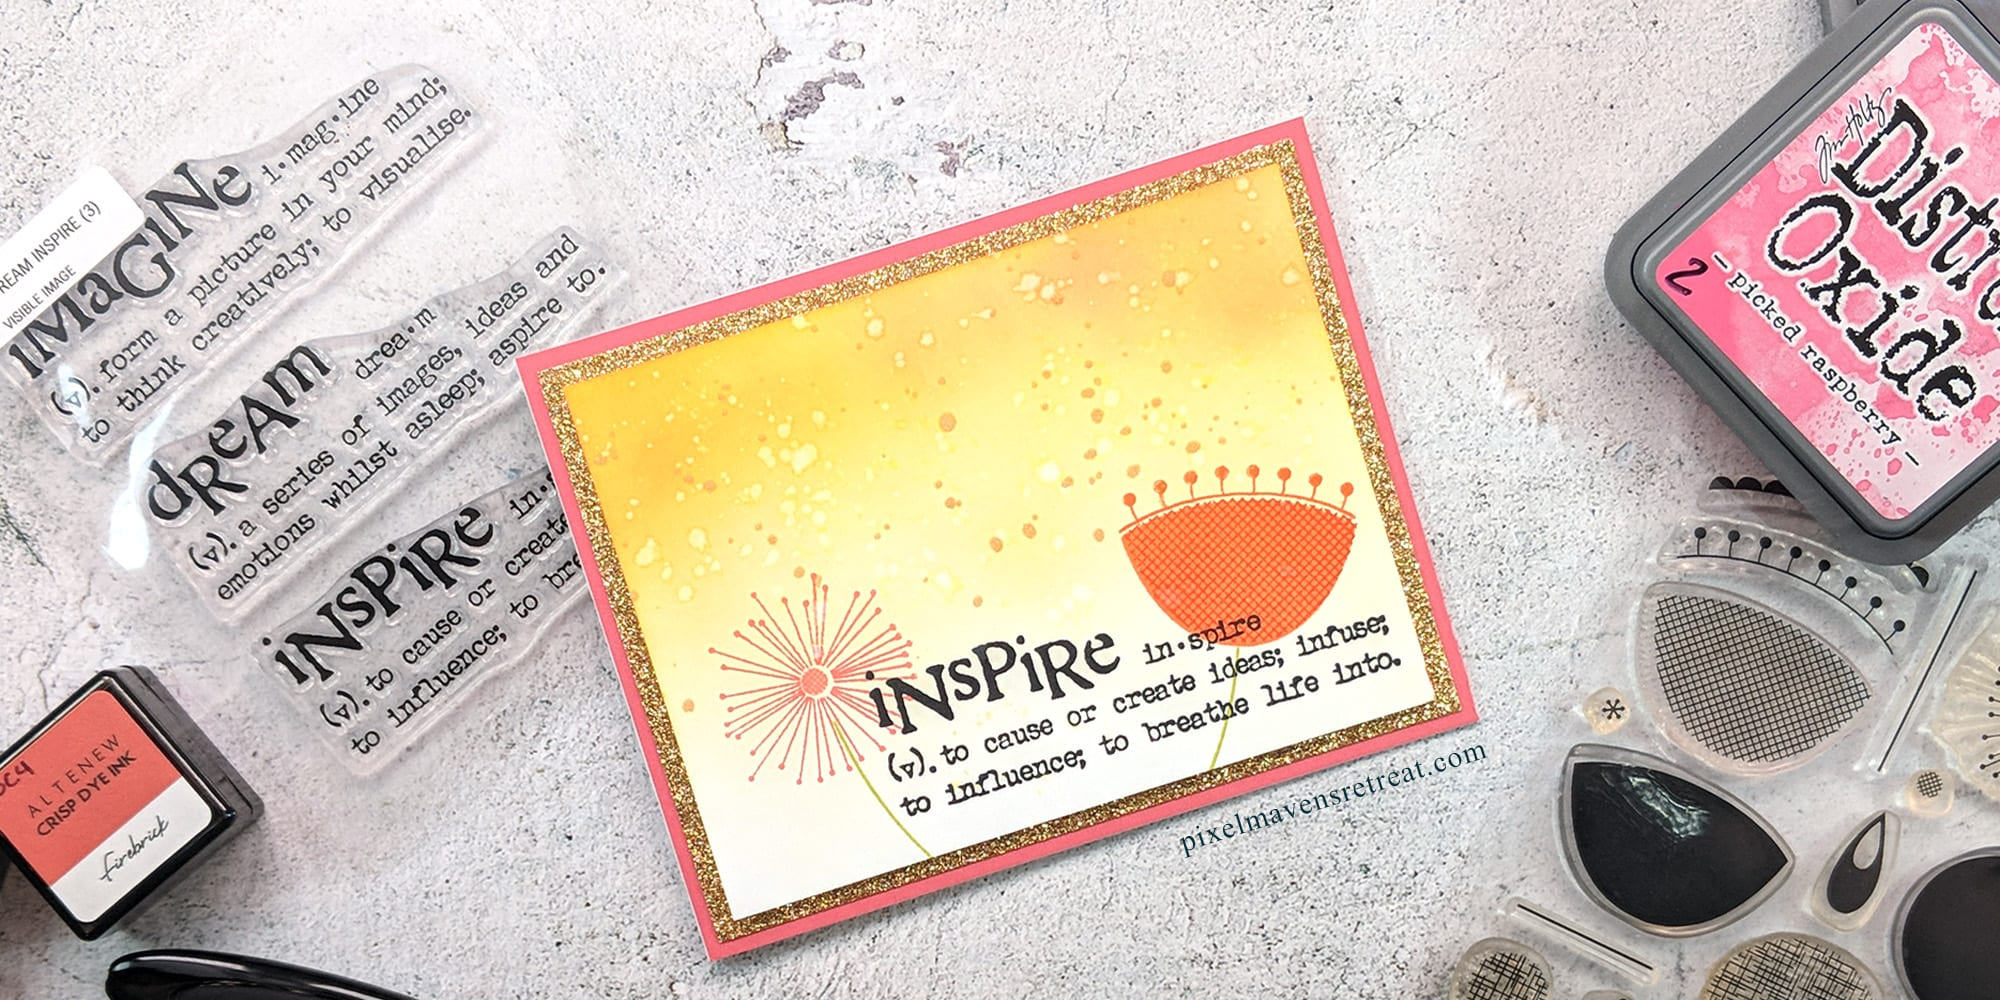 Greeting card displayed on a stone desktop with crafting supplies. Card is pink, yellow and orange with Mid-Century Modern floral images and a sentiment reading